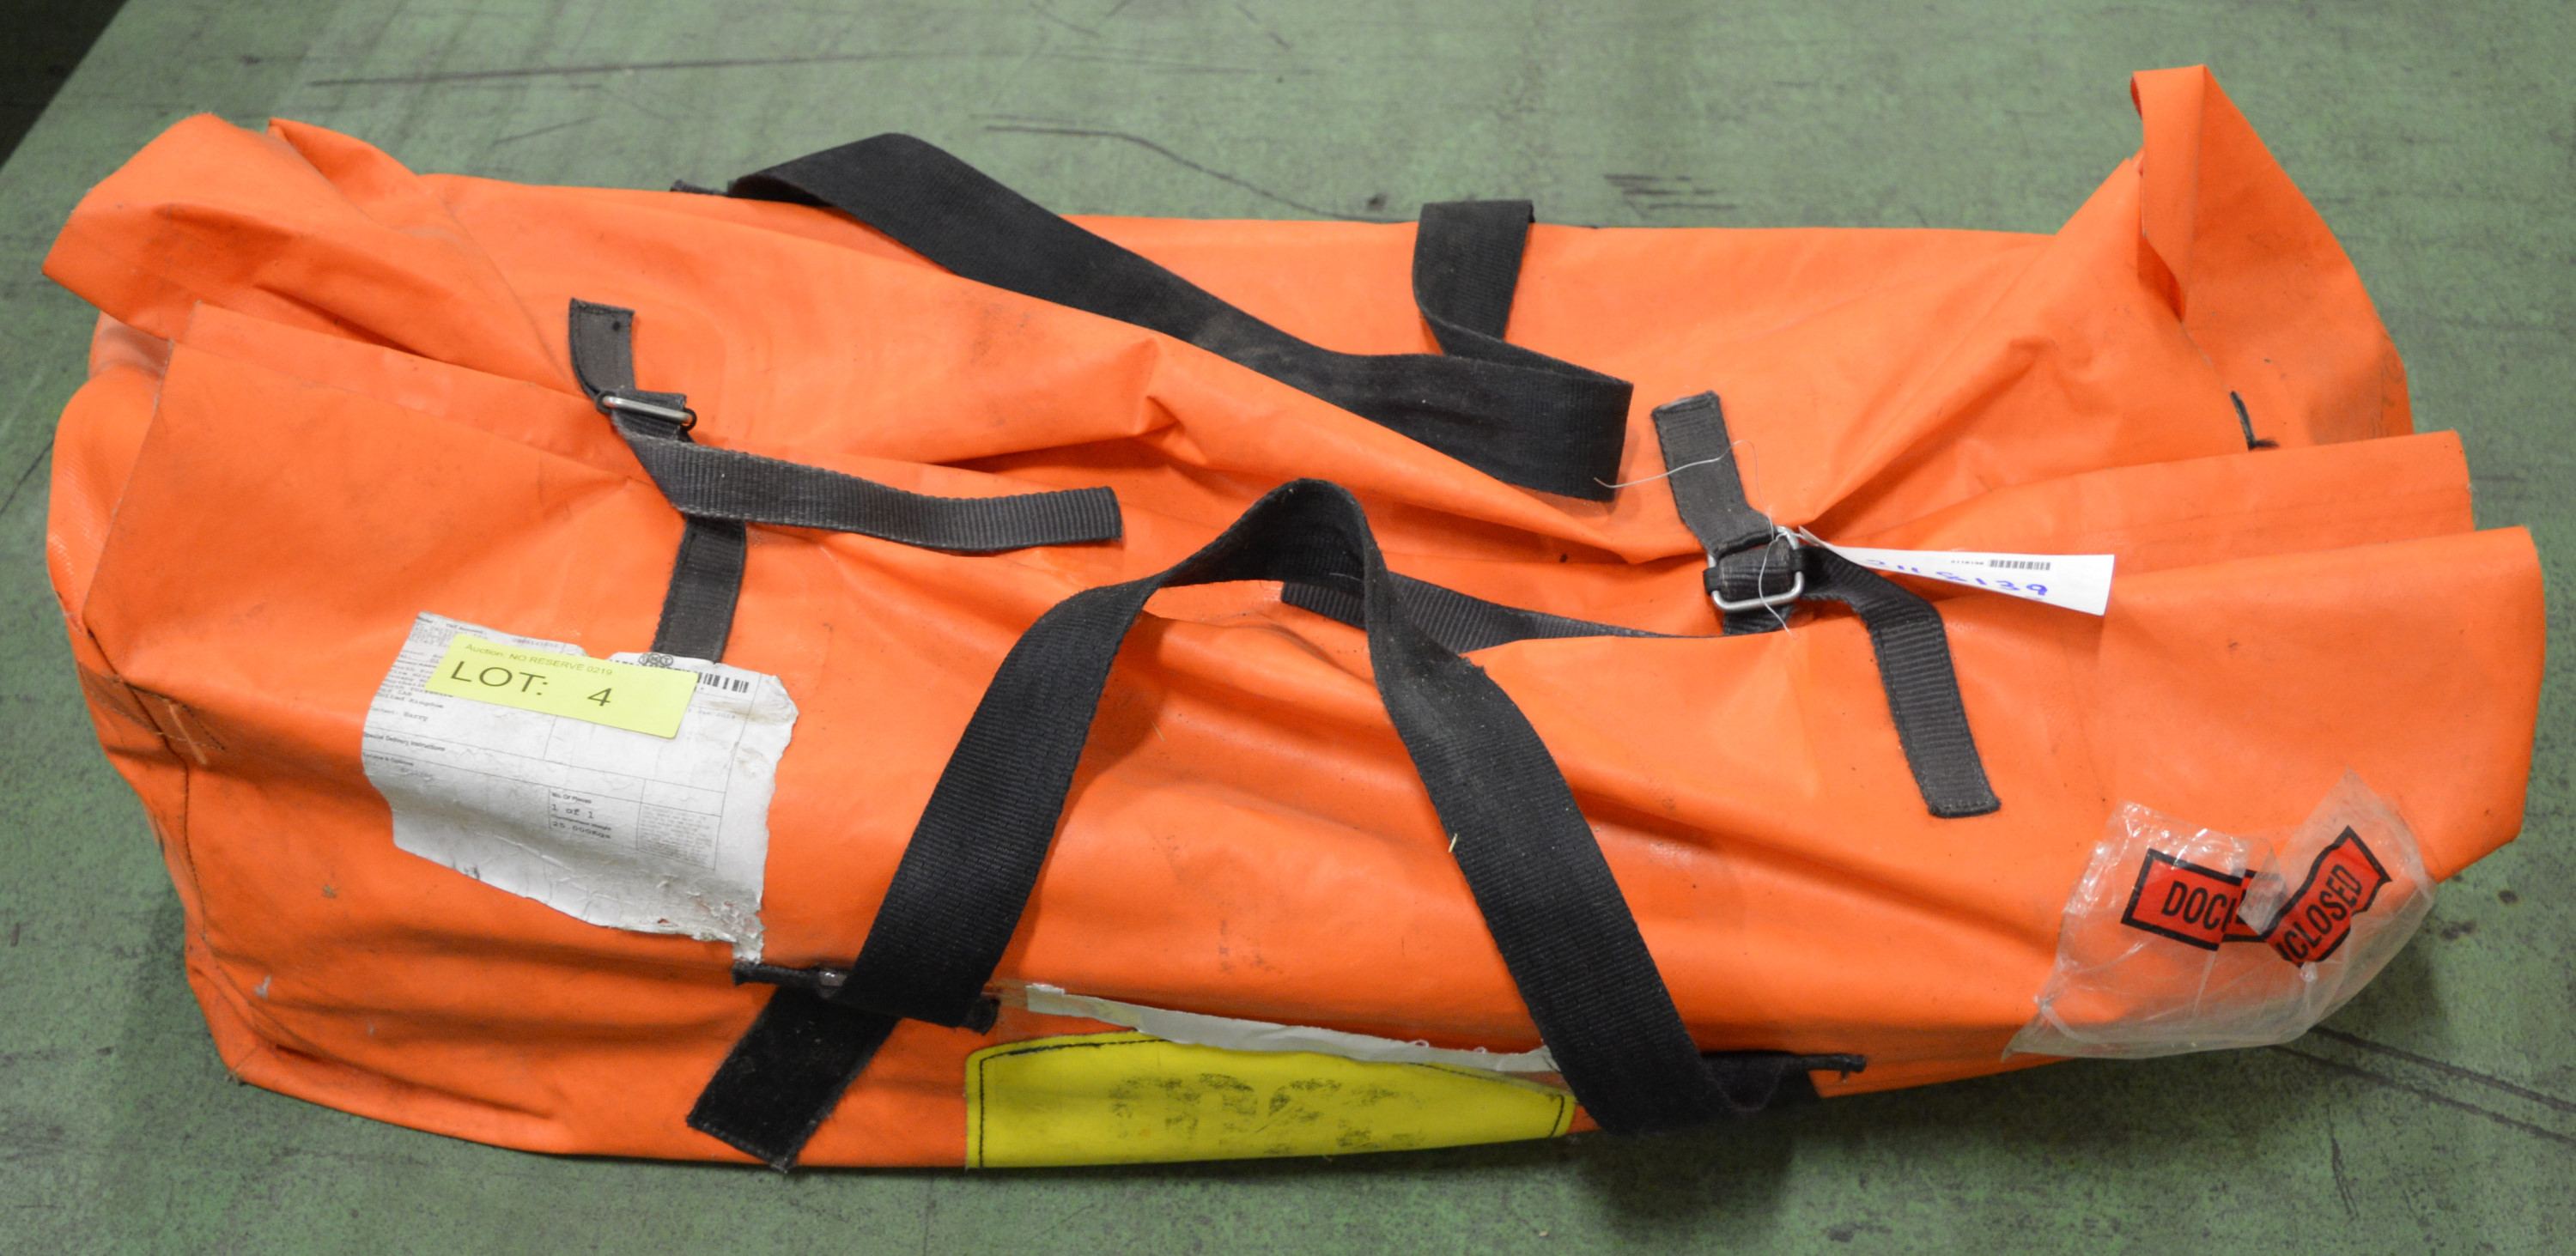 Lot 4 - MFC Survival Rescue Sled.